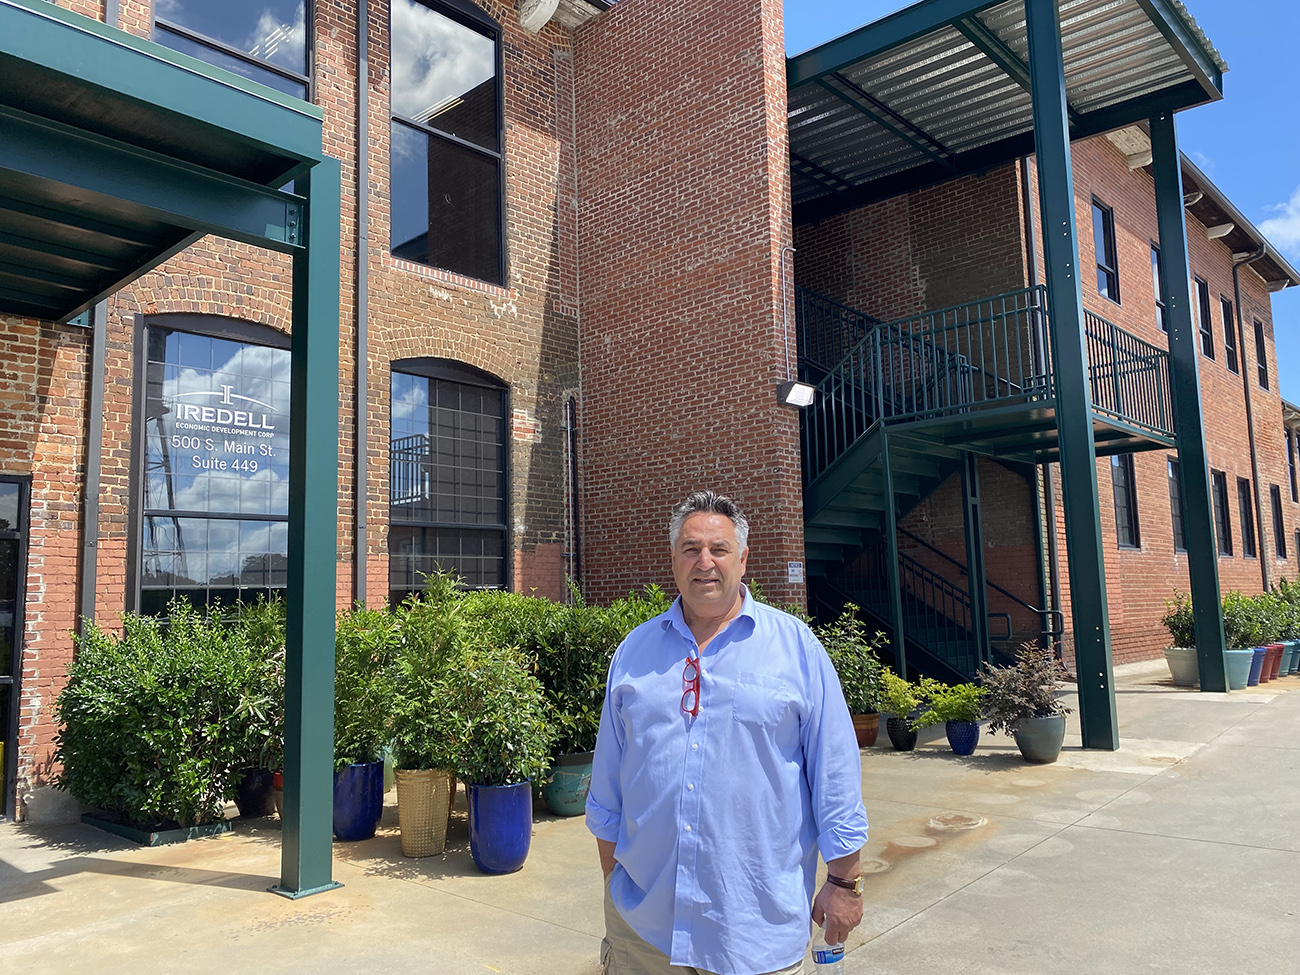 A Mooresville mill comes back to life with popular restaurants and antique shops